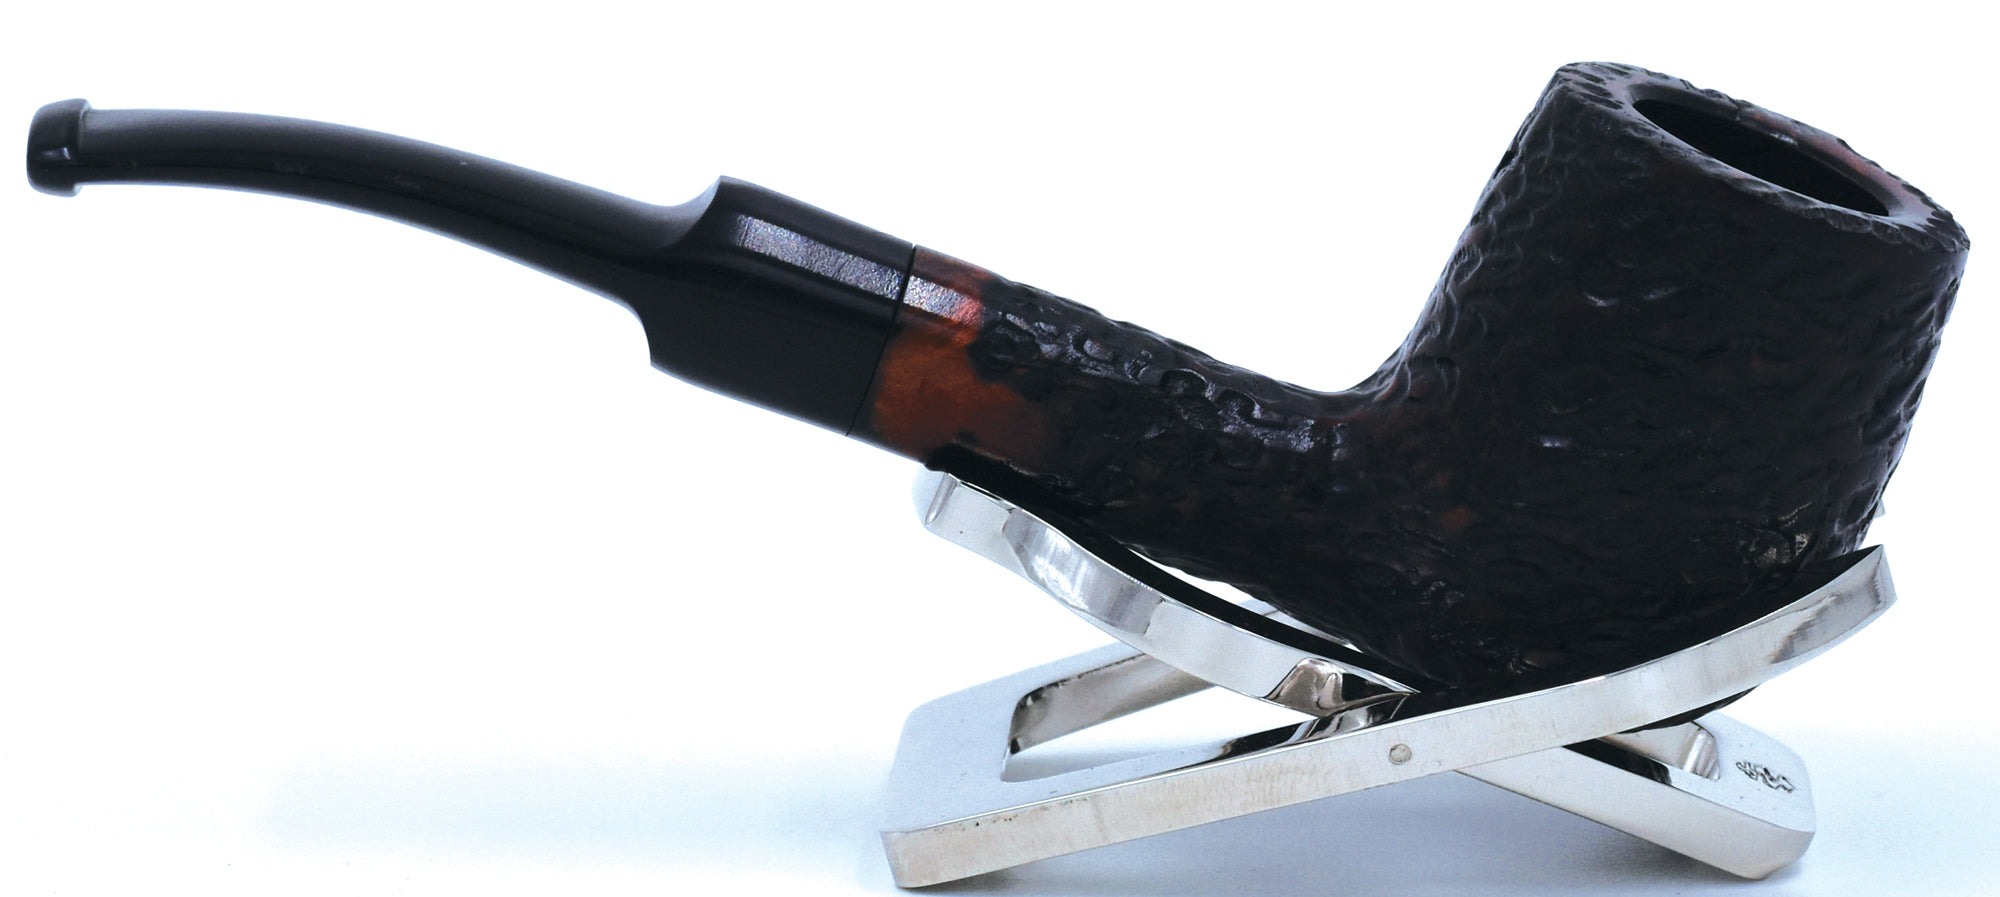 LEGENDEX® LASCALA* 9 MM Filtered Briar Smoking Pipe Made In Italy 01-08-510 Acrylic Series